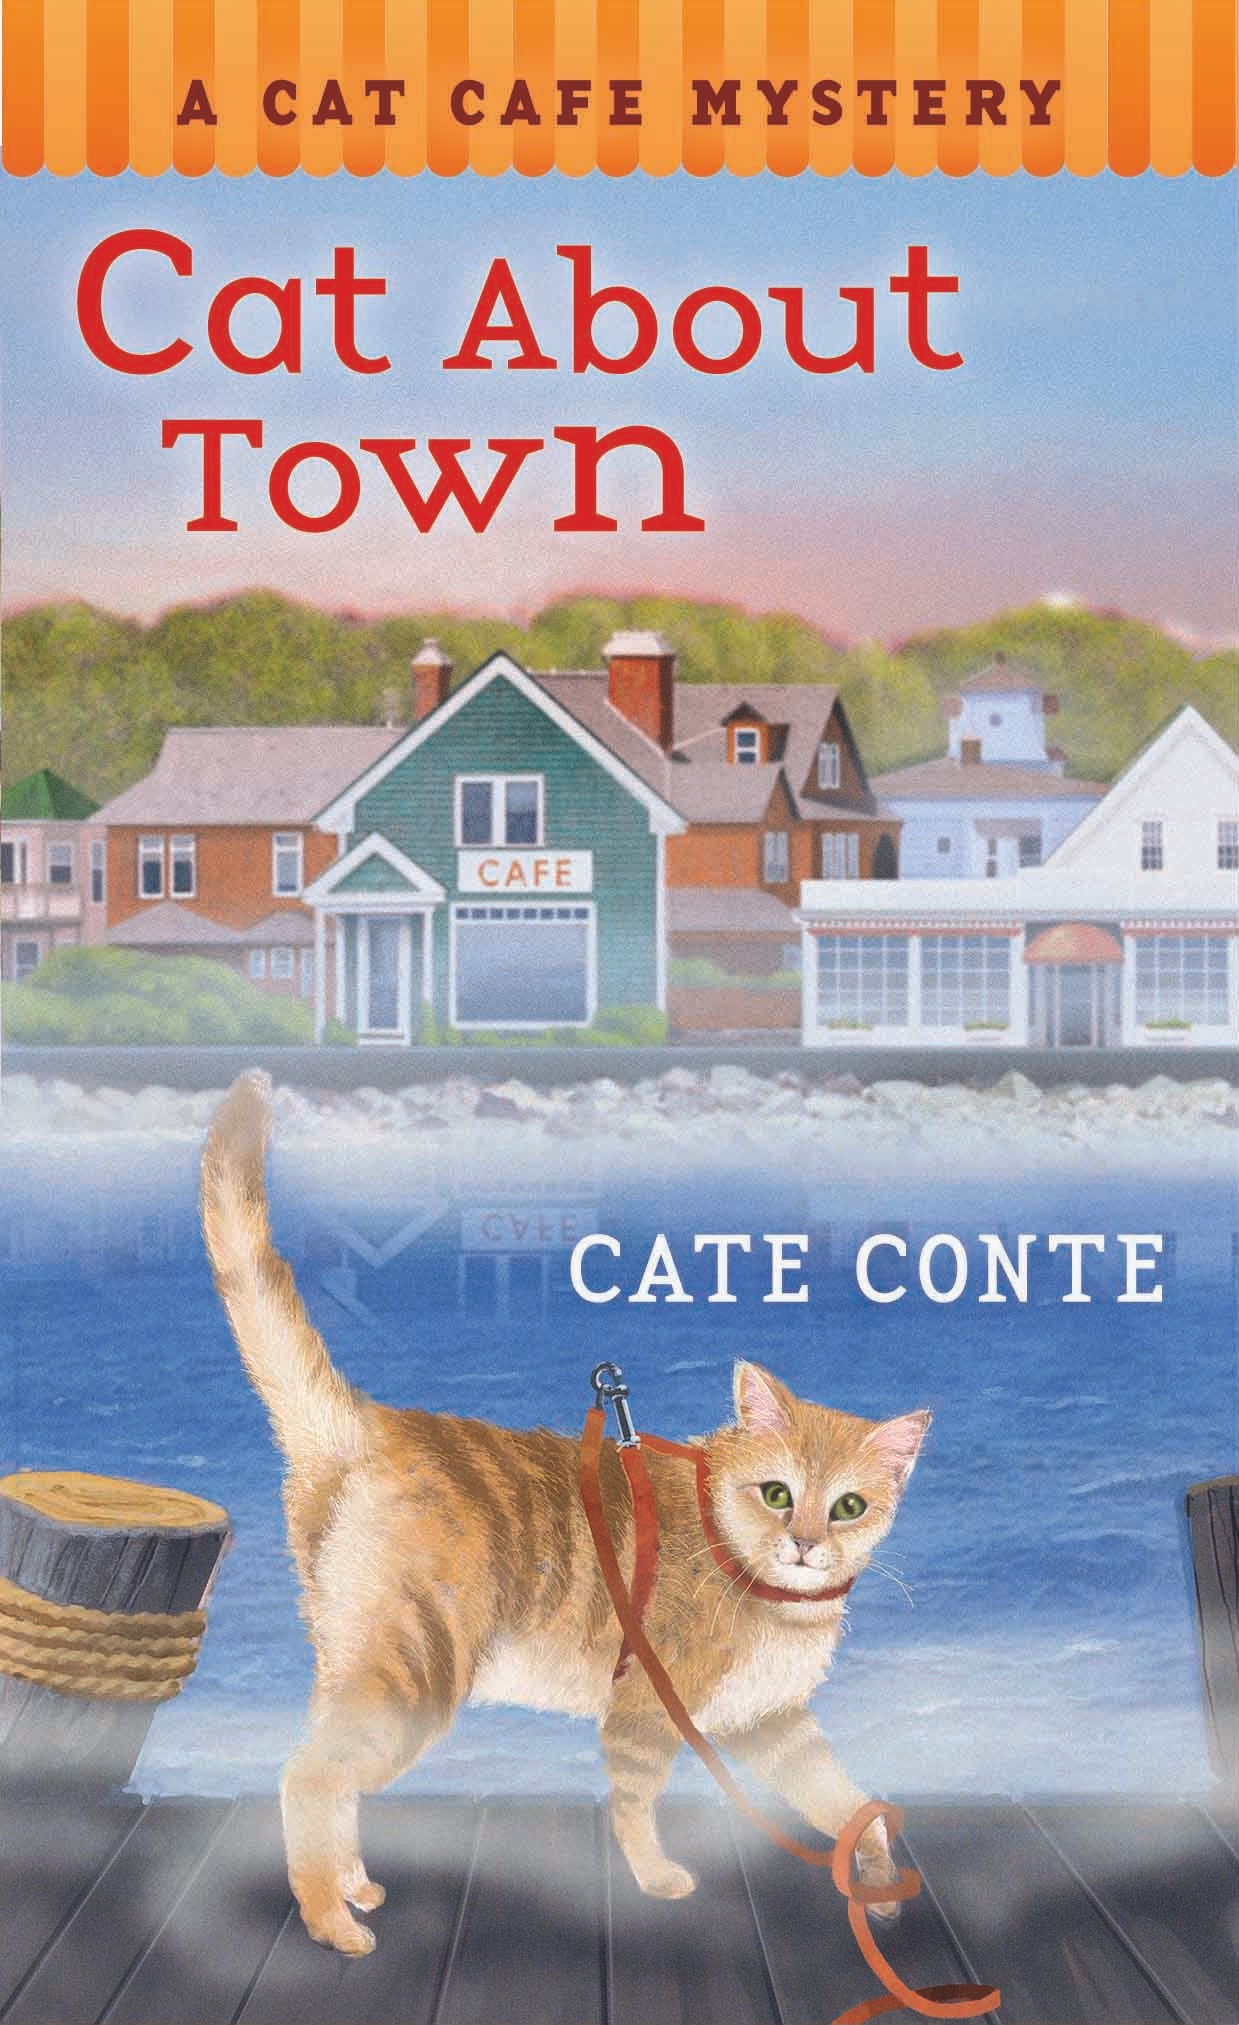 cover - Cat About Town 10-18-16.jpg